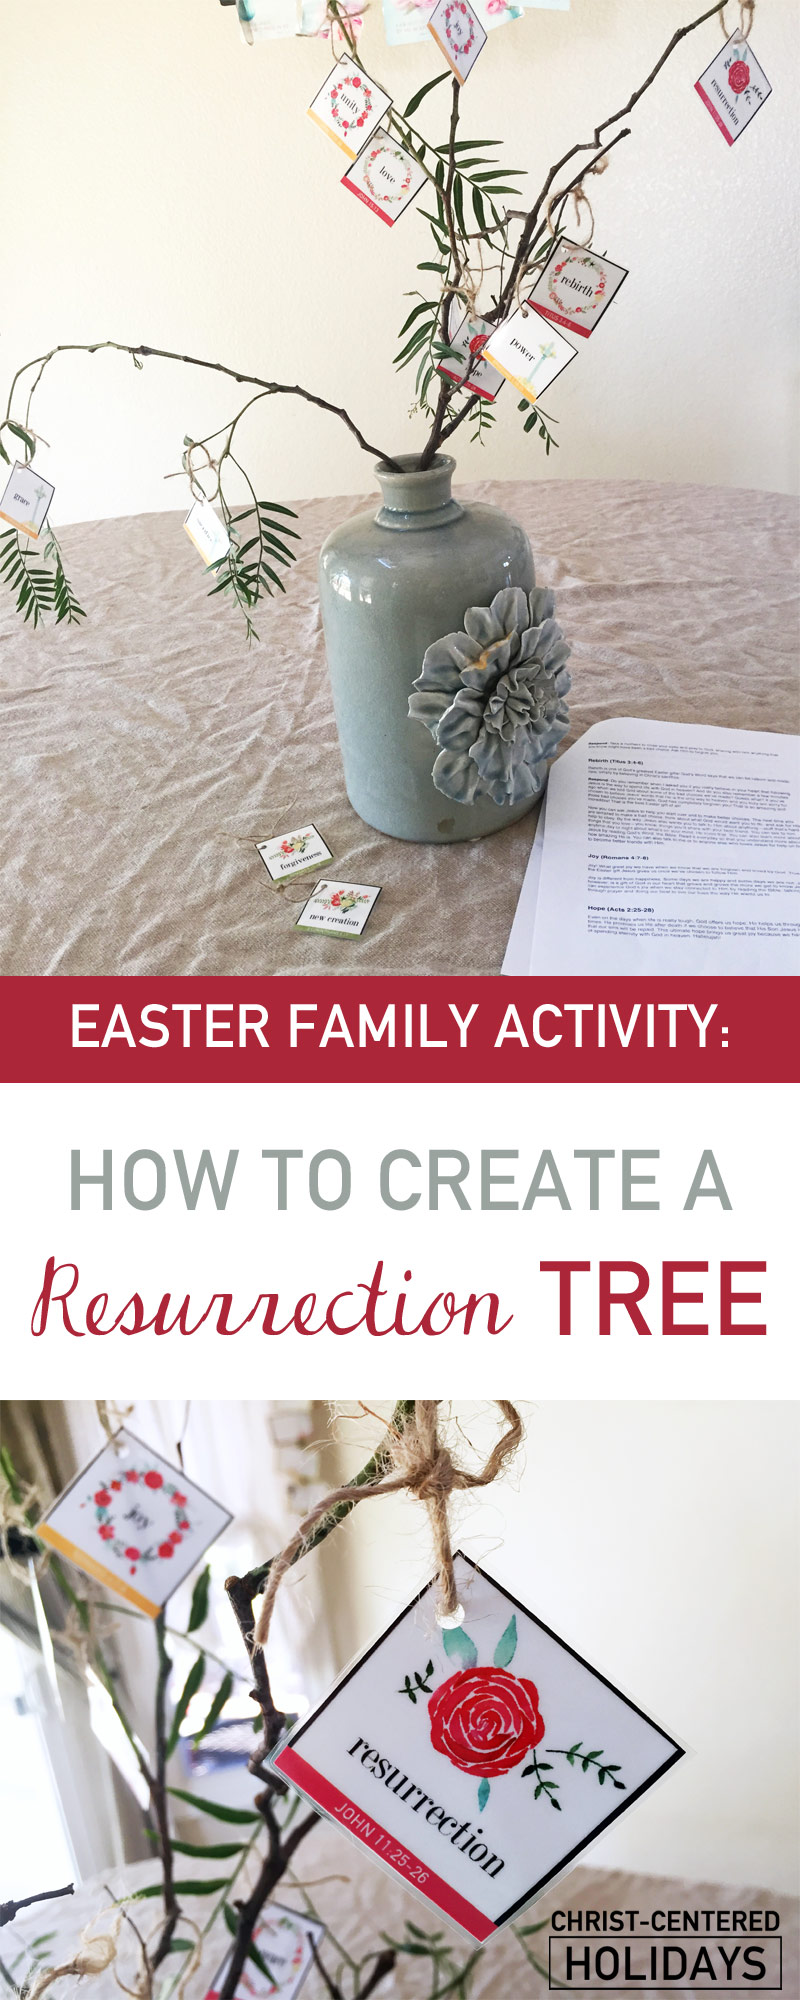 This Resurrection Tree activity is one of several fun Resurrection lessons for kids or Easter games for kids that teach about the true story of Easter! Our family loves making a Resurrection Tree at Easter as part of our family's Easter crafts for kids. Teach your children about Jesus' Resurrection story with this activity for kids. #easteractivitiesforkids #easteractivitiesforkidschristian #resurrectioncraftsforkids #resurrectionactivitiesforkids #resurrectionactivitiesforteens